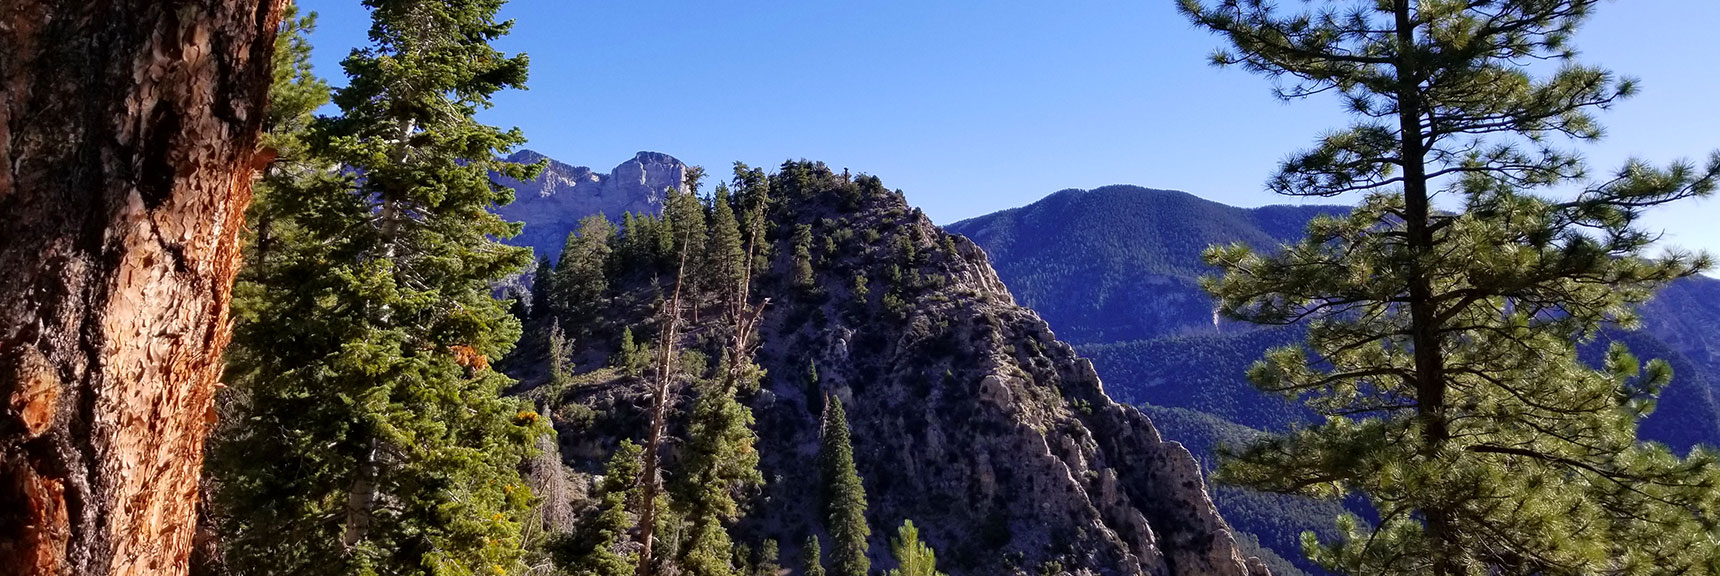 Cathedral Rock Viewed from Its Saddle, Mt. Charleston Wilderness, Nevada